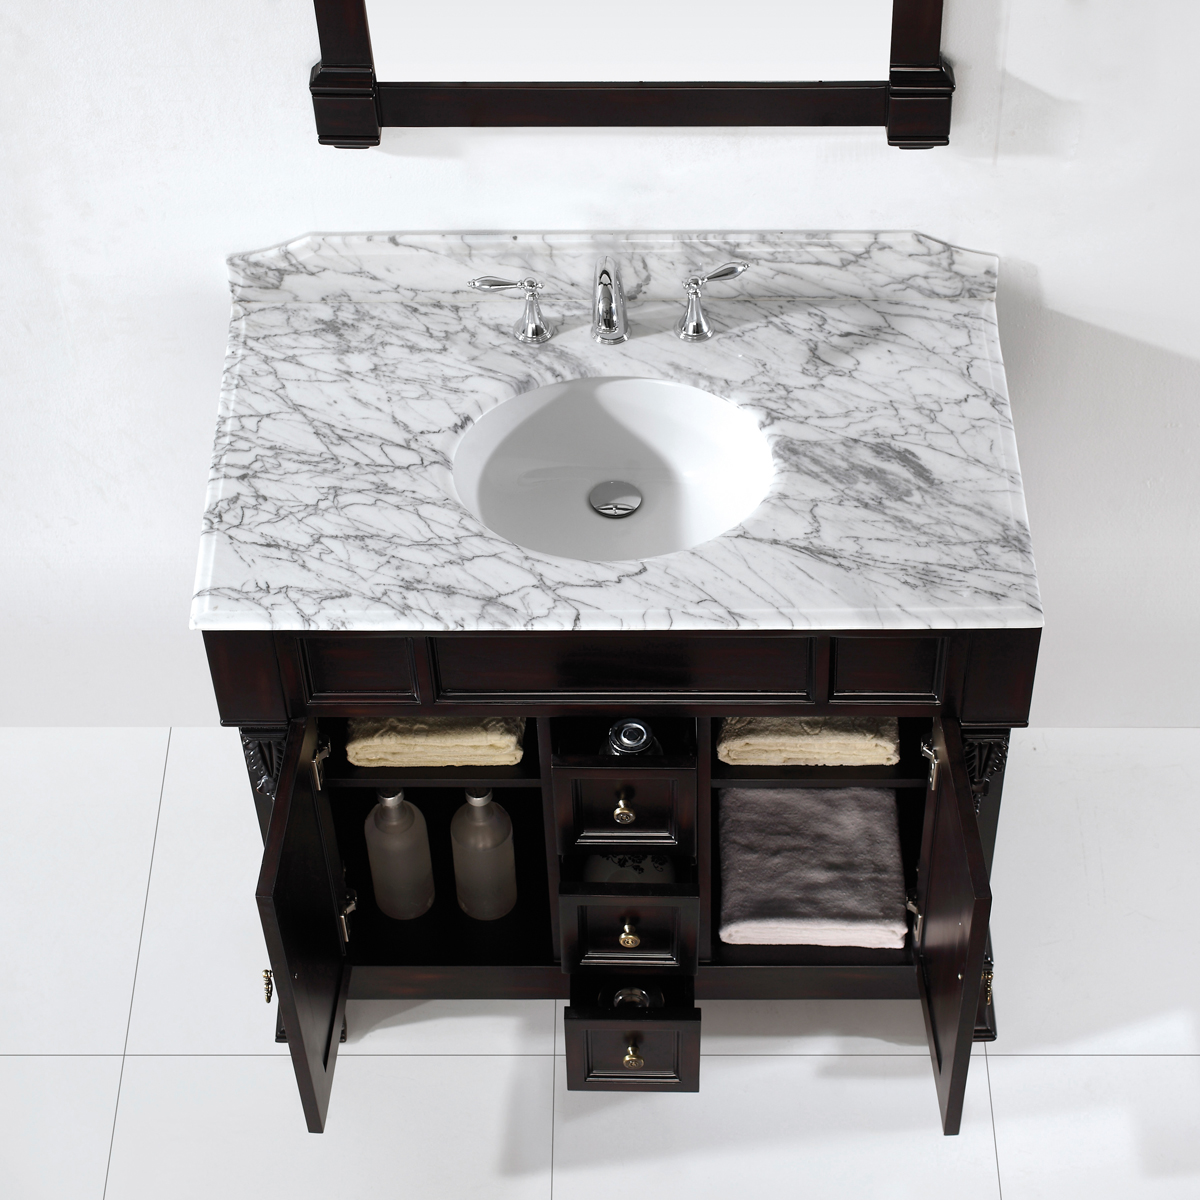 Shown with Round Sink